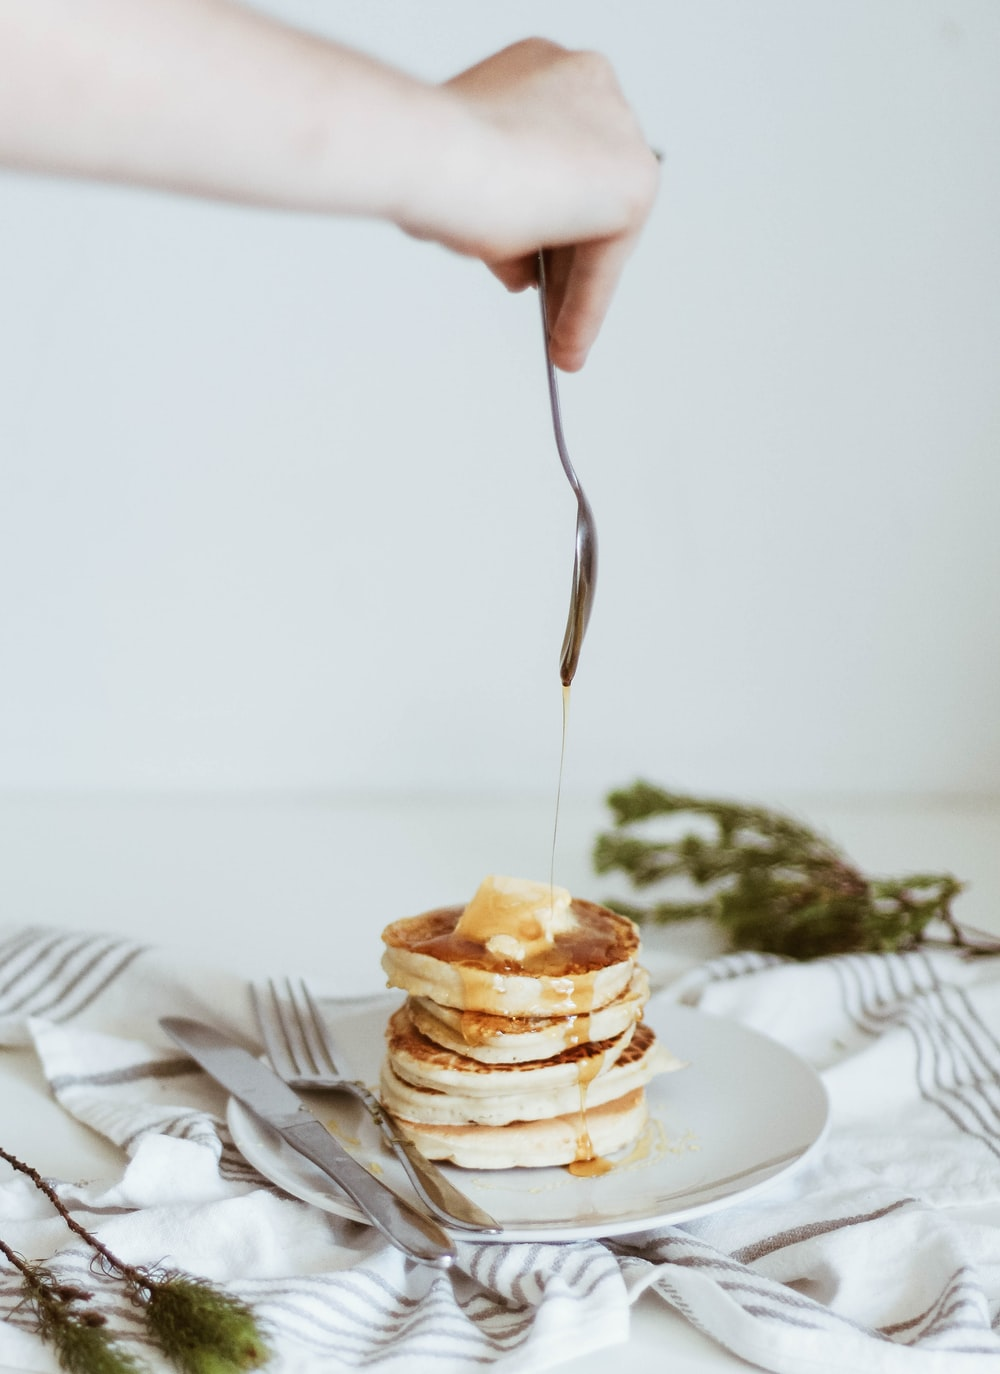 person pouring honey on top of pancake